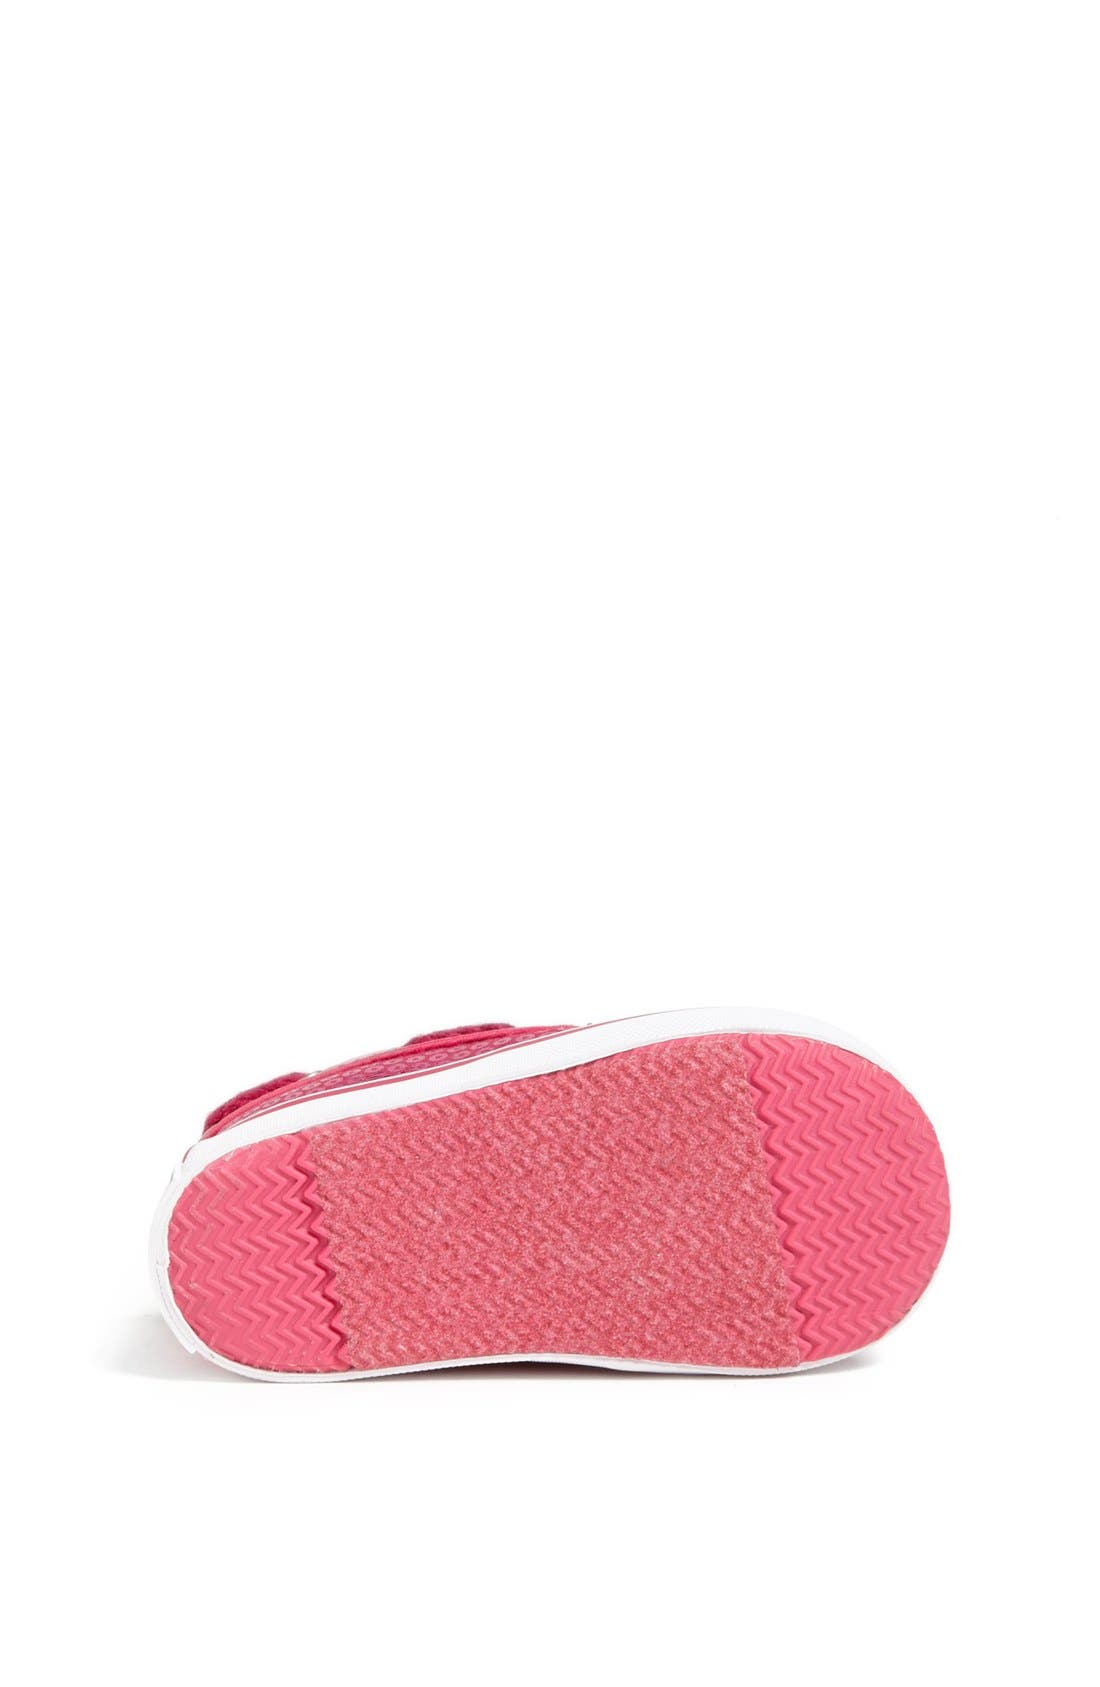 Alternate Image 4  - Sperry Top-Sider® Kids 'Bahama' Crib Shoe (Baby)